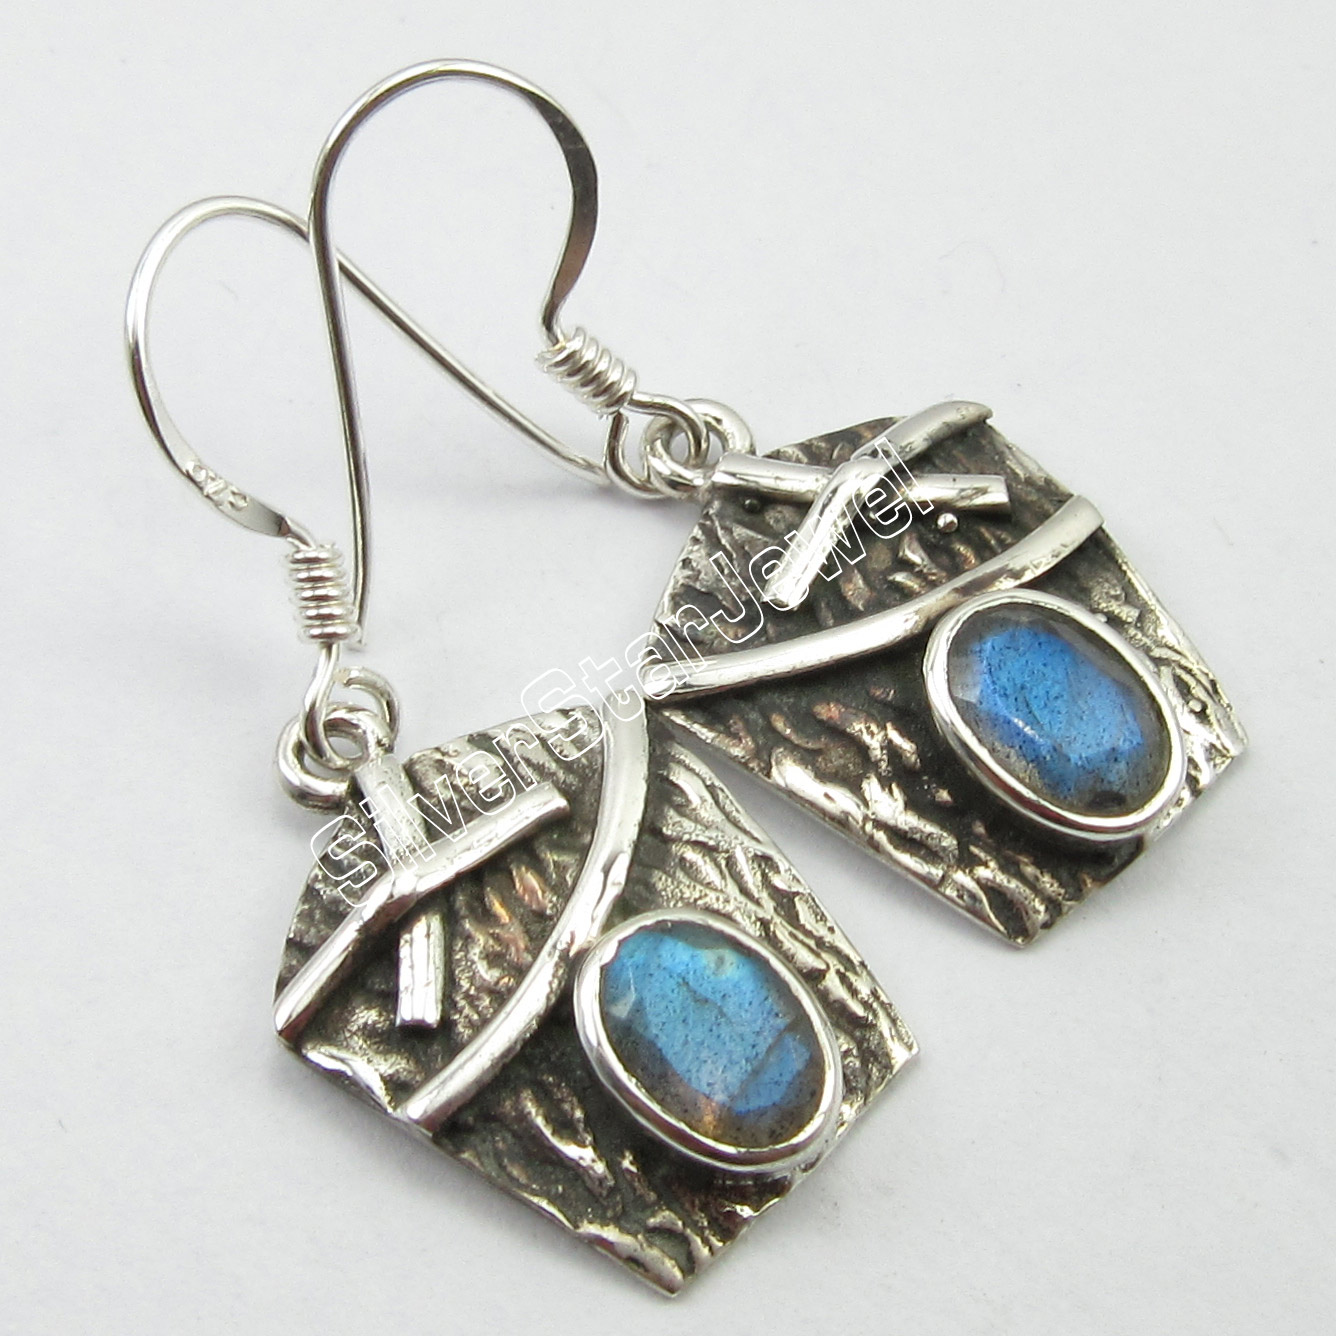 PURE Silver Vintage Inspired NEW Earrings Classic LABRADORITE Jewelry 3 2 CM